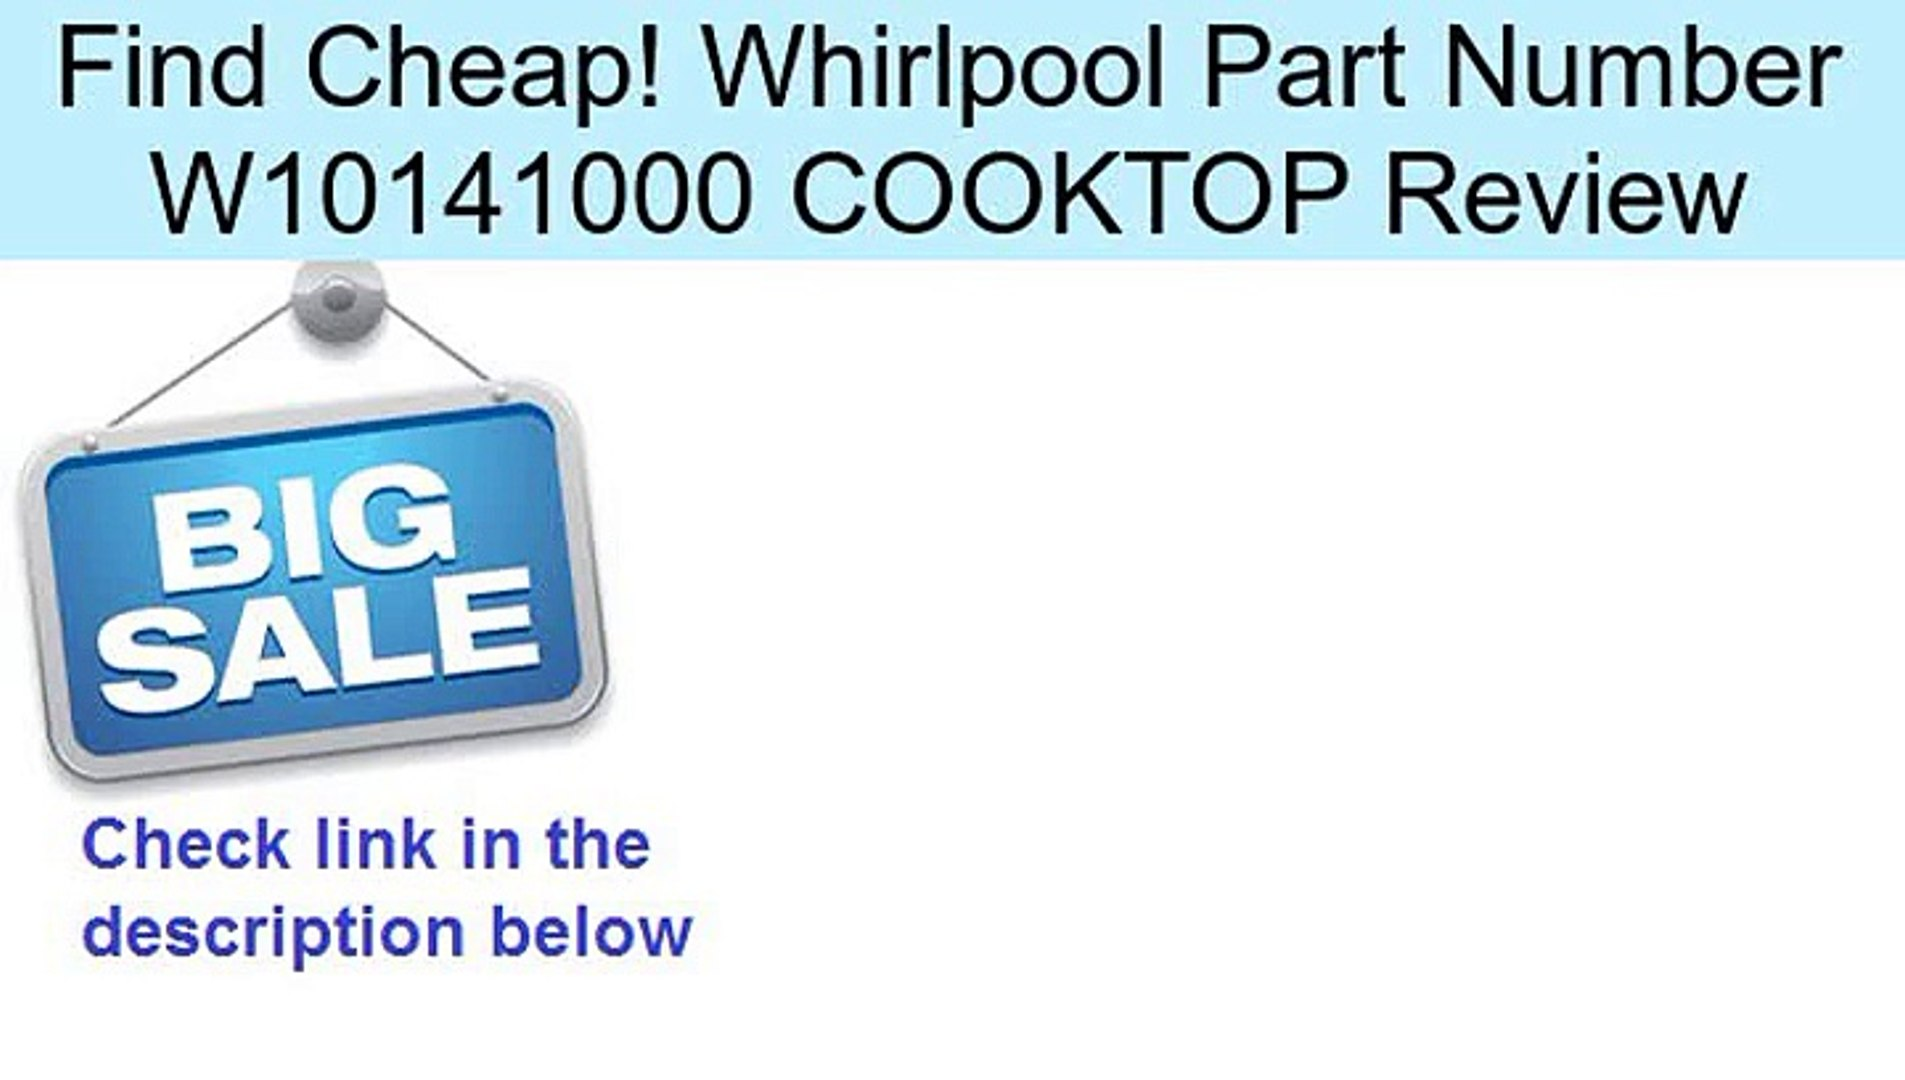 COOKTOP Whirlpool Part Number W10141000